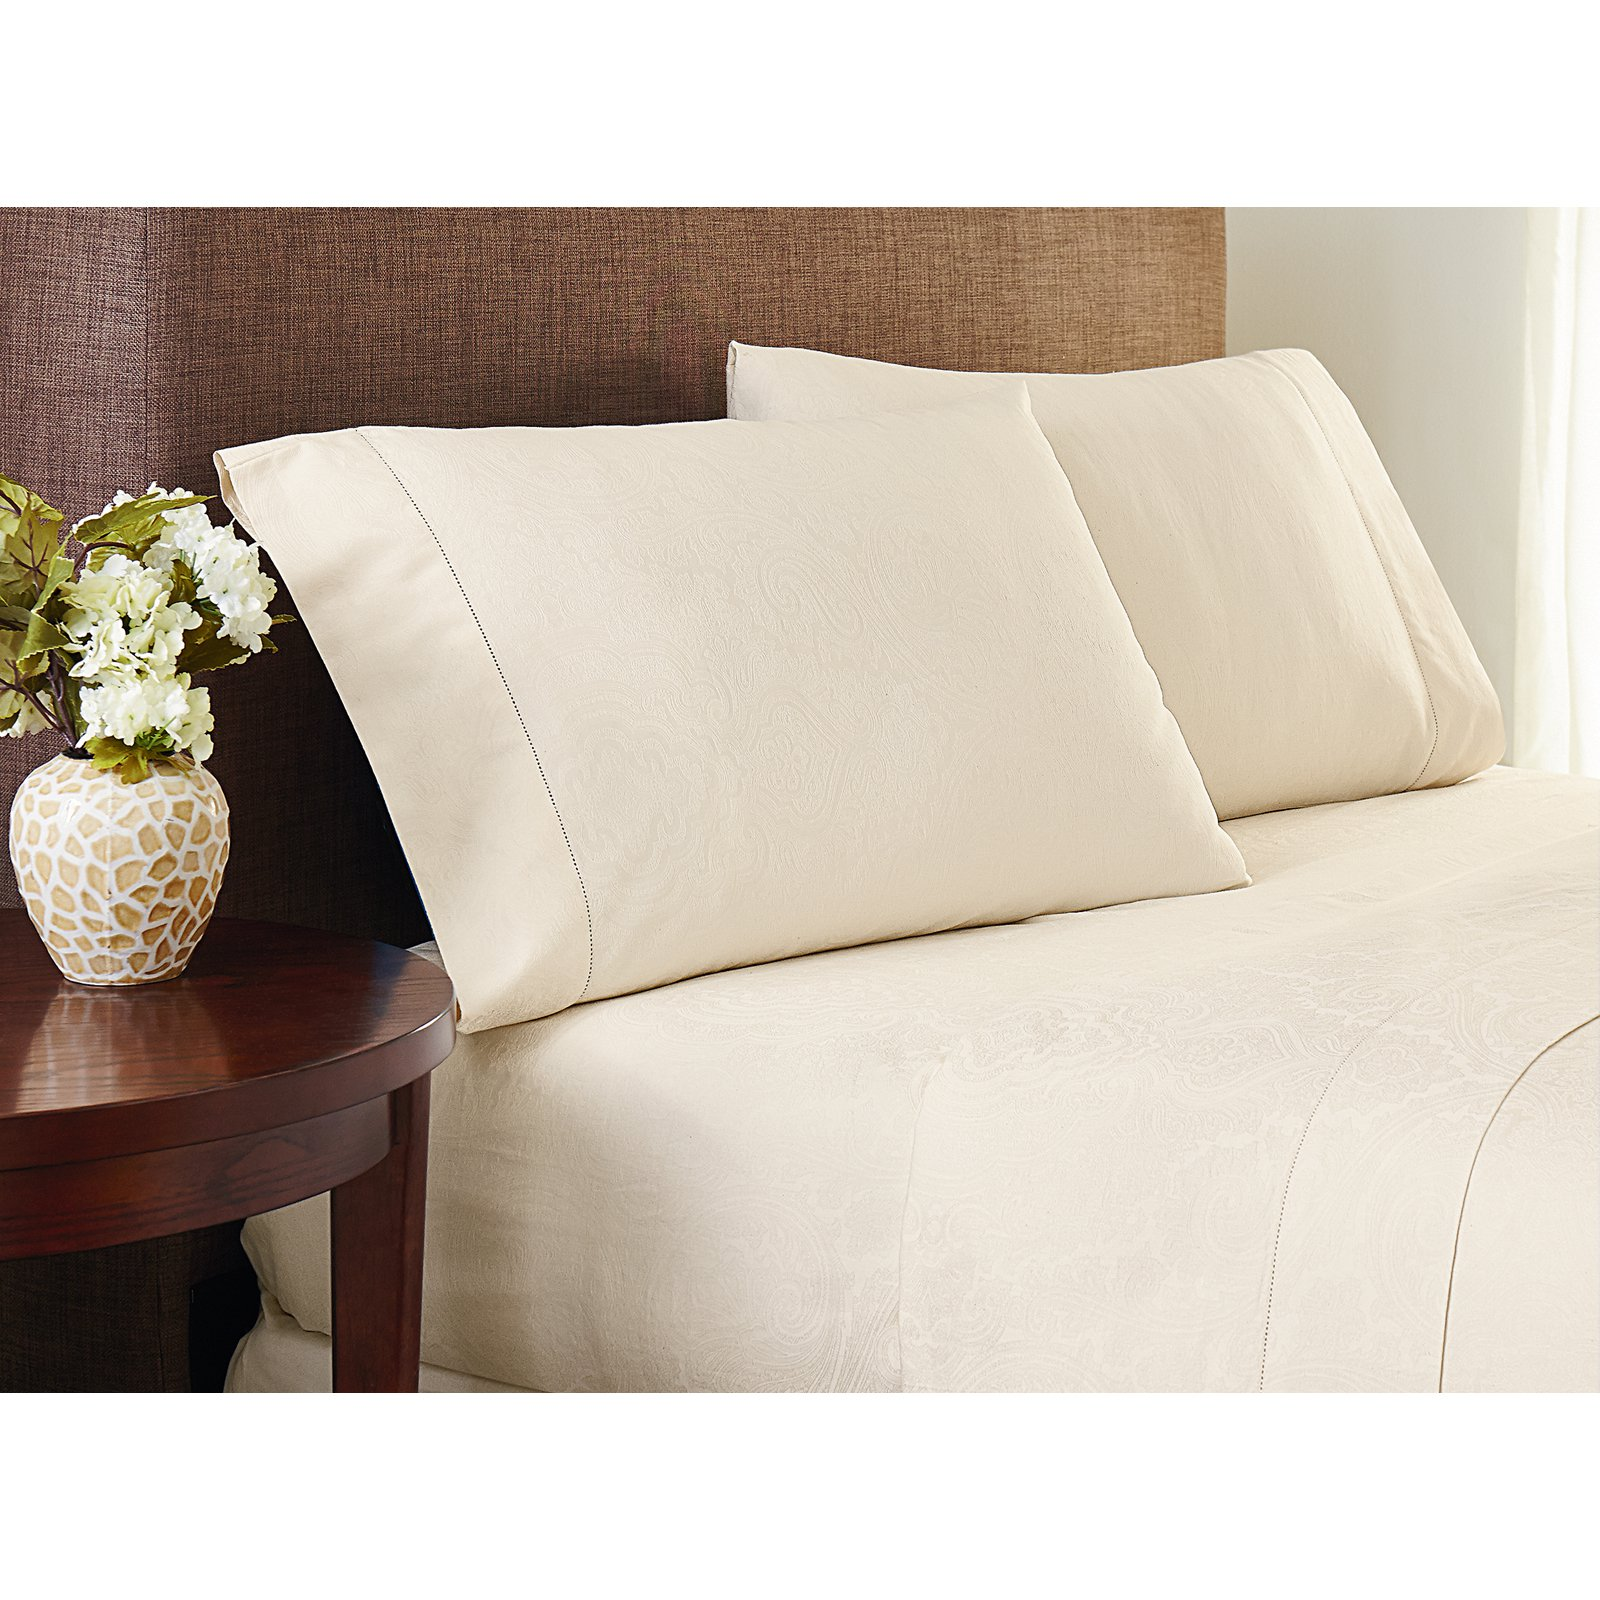 Crowning Touch Cotton Naturals Jacquard Sheet Set